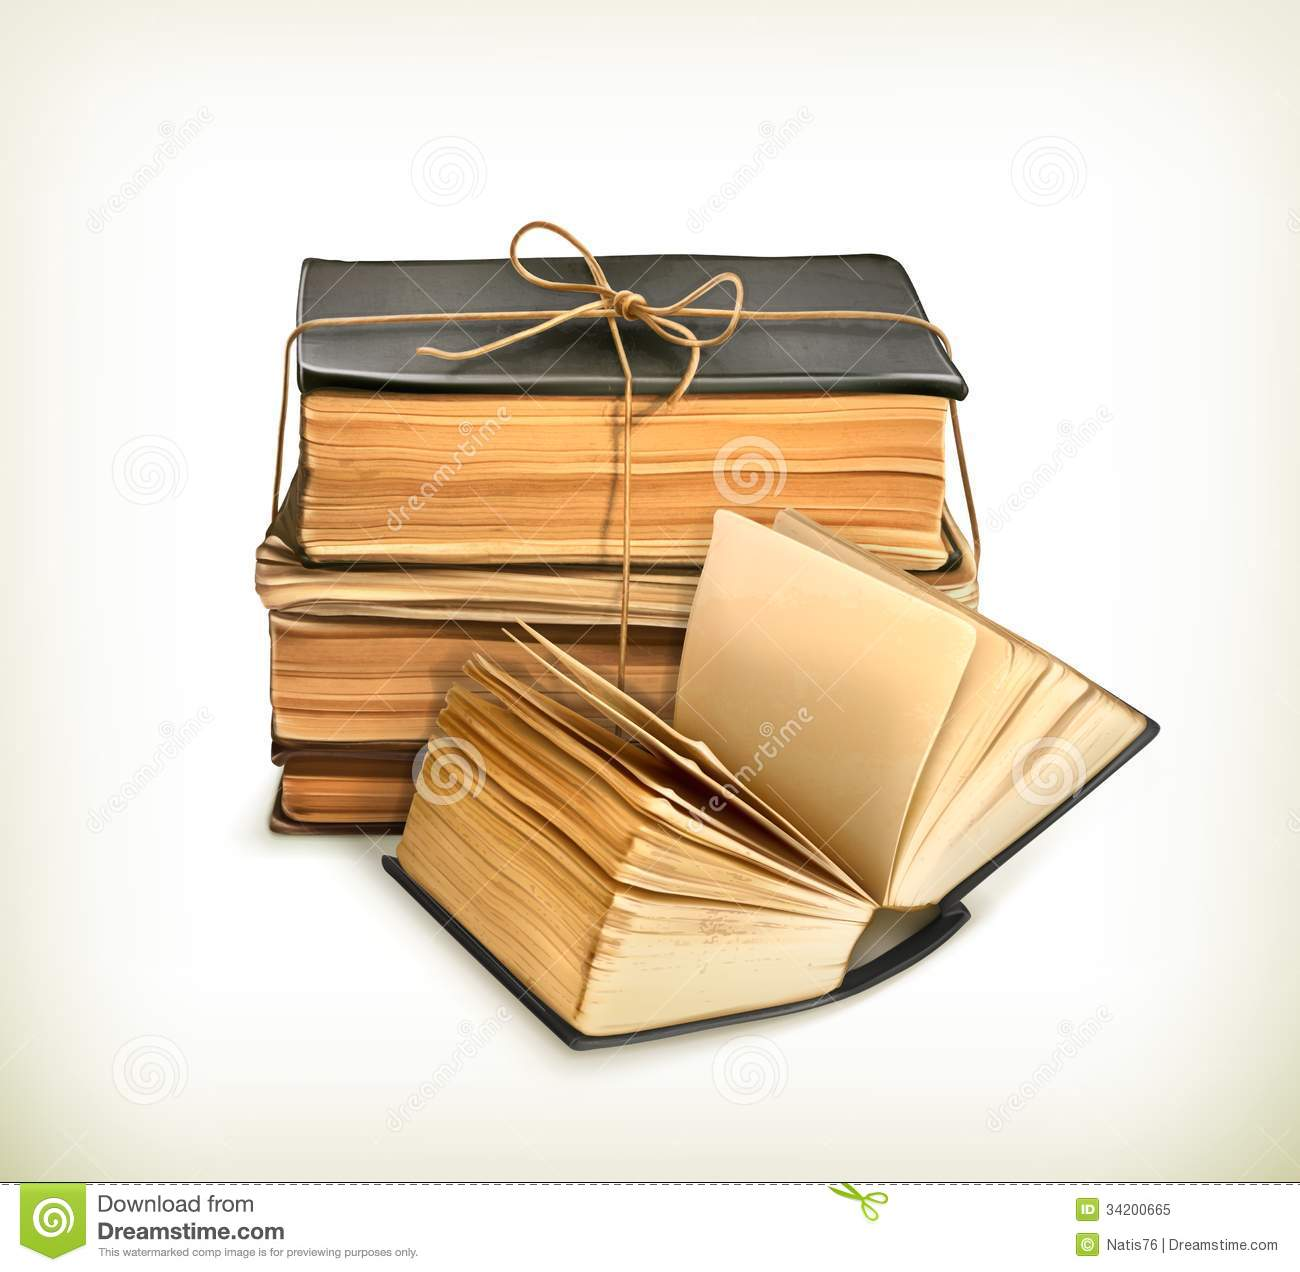 Book Cover Illustration Fee : Stack of old books royalty free stock photo image